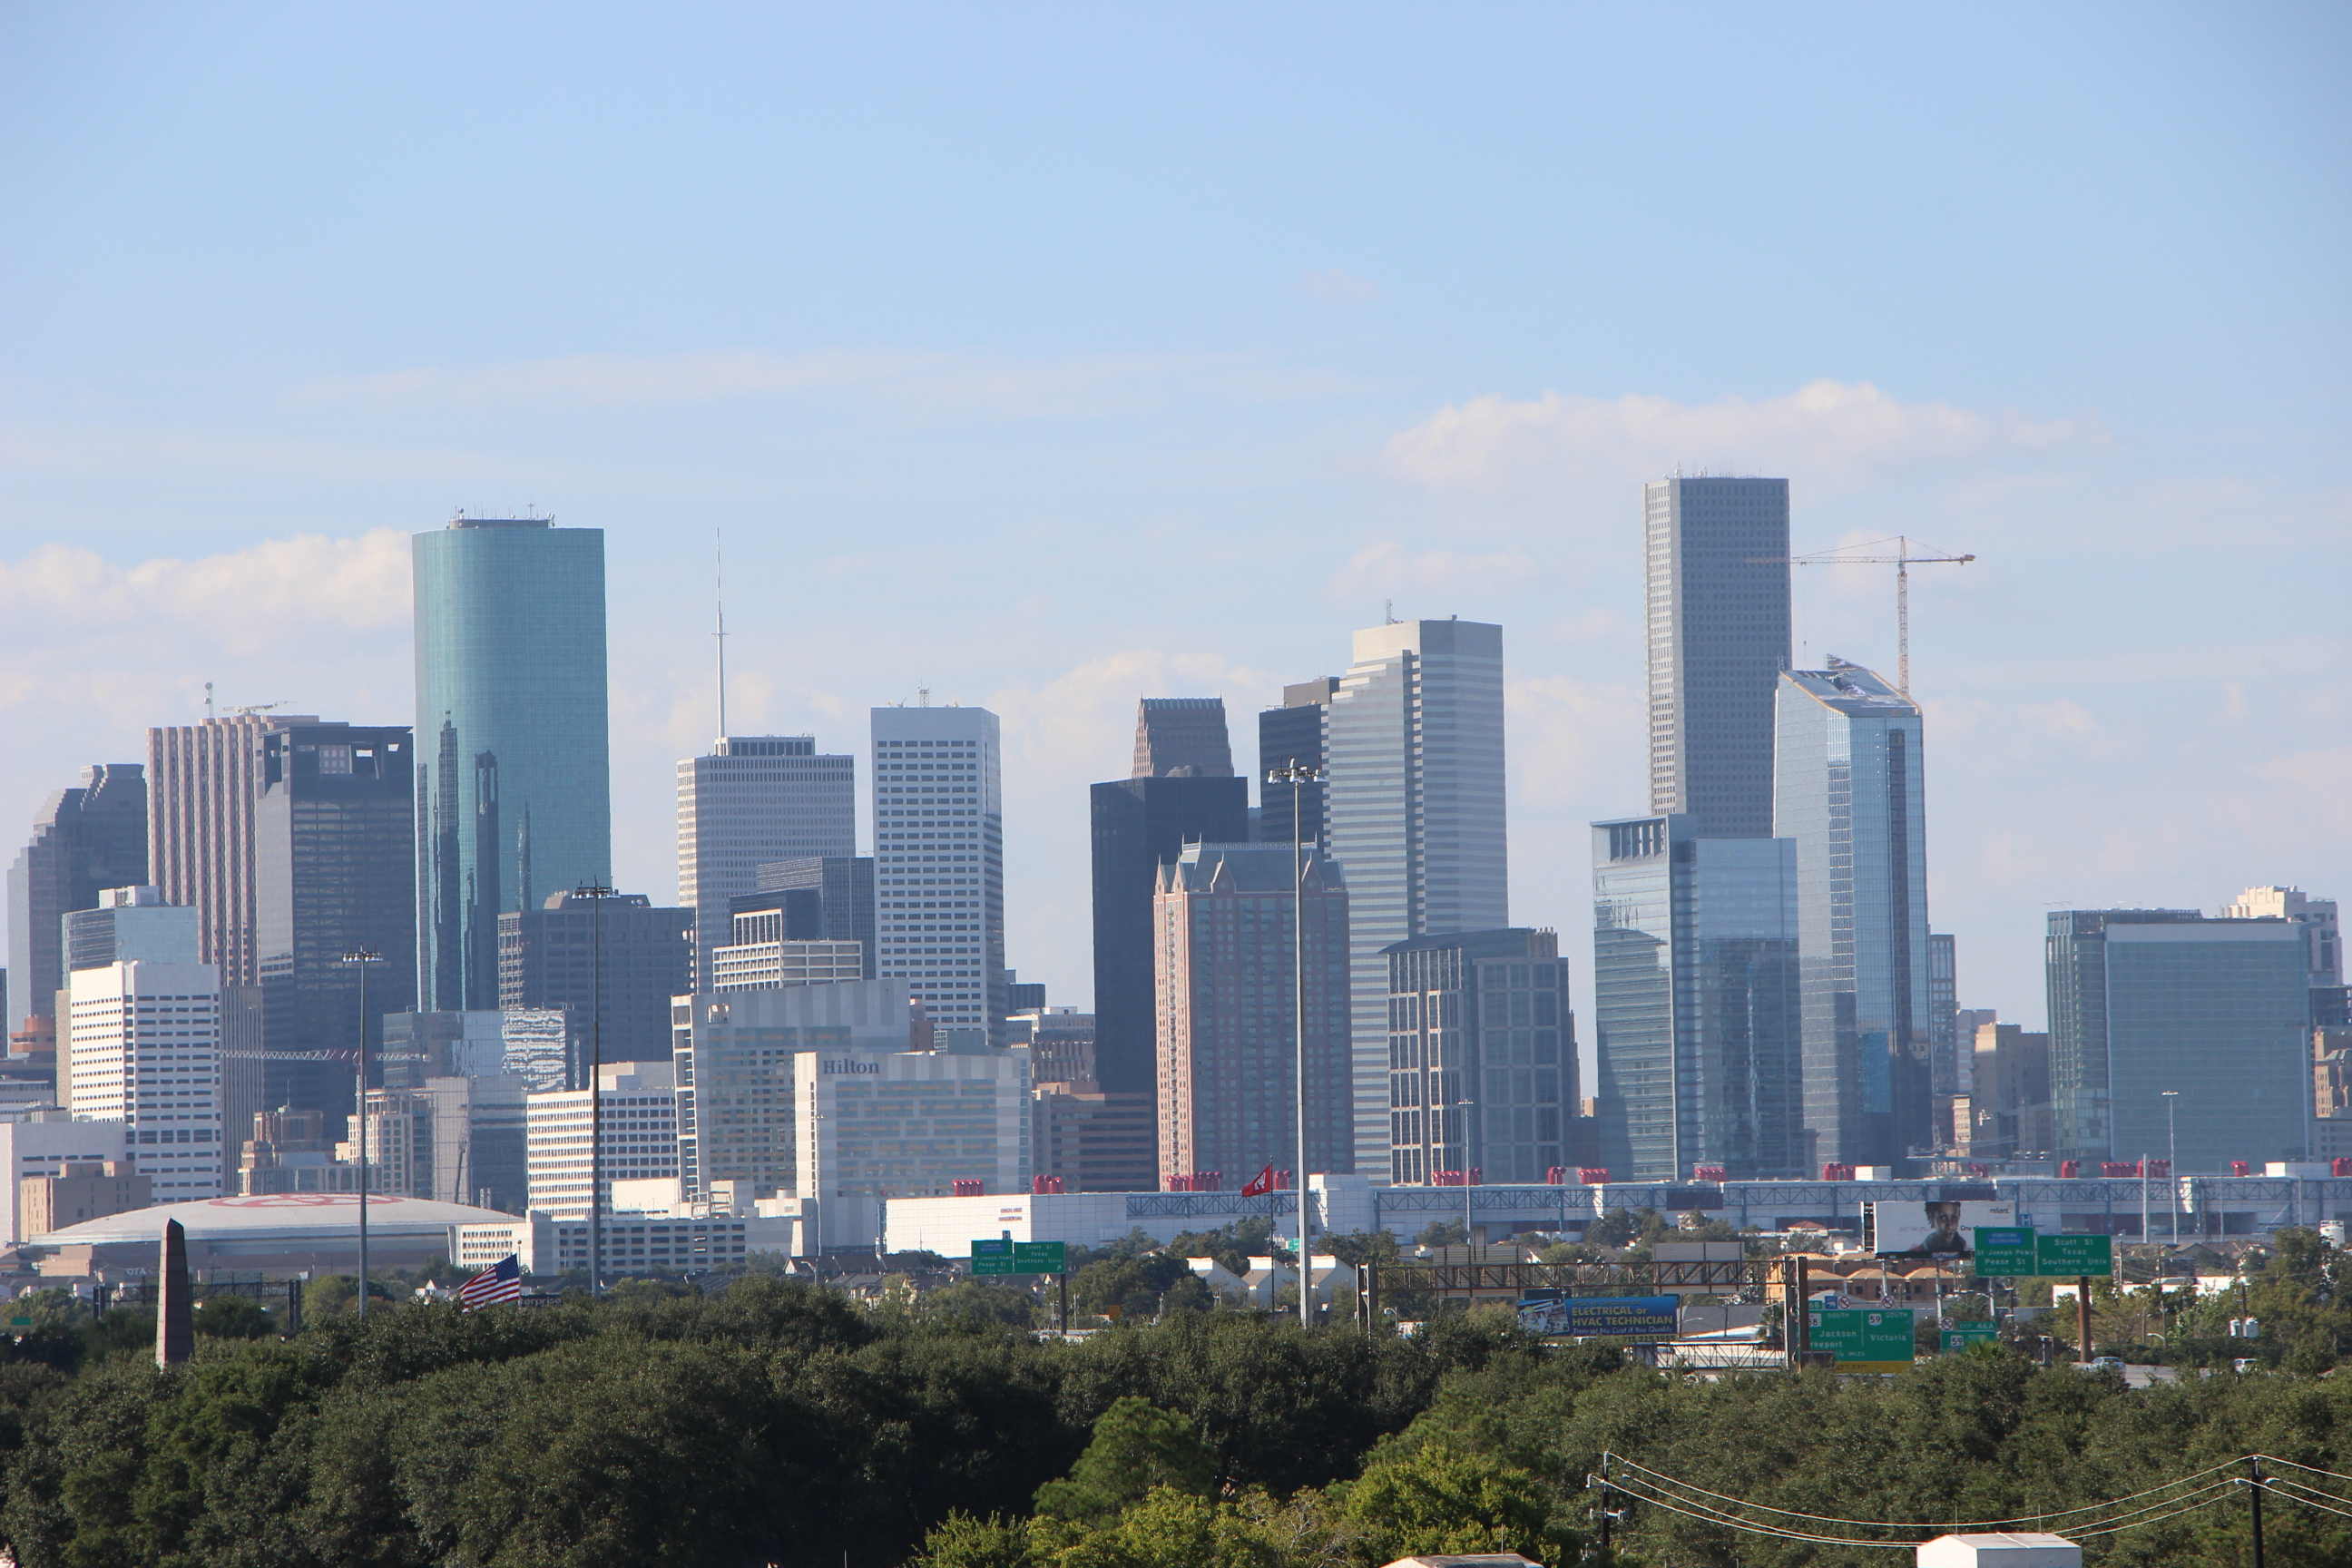 Houston skyline from HPM building roof.